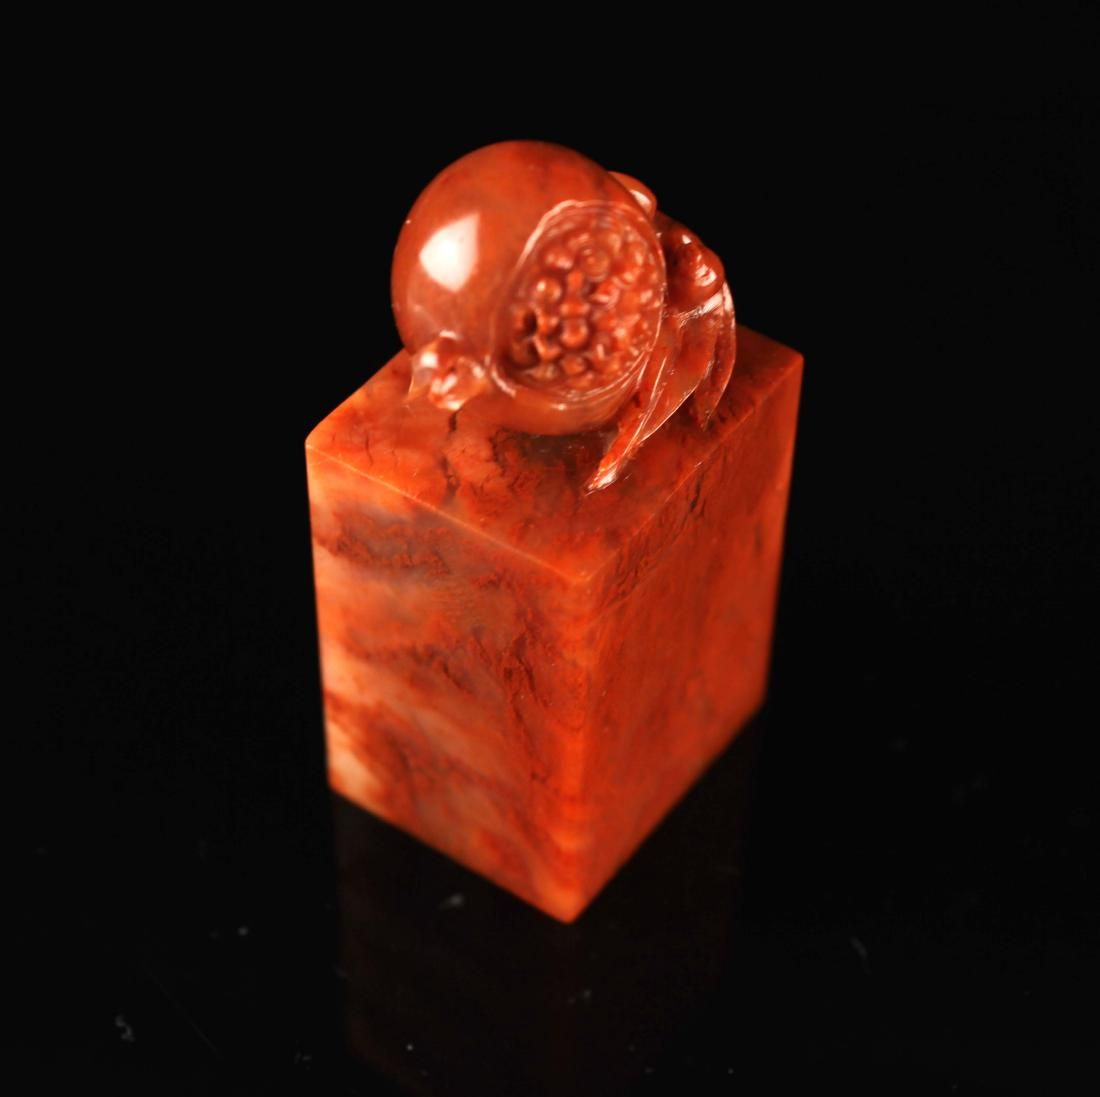 Shou-Shan Stone Carved with a Pomegranate Button Seal